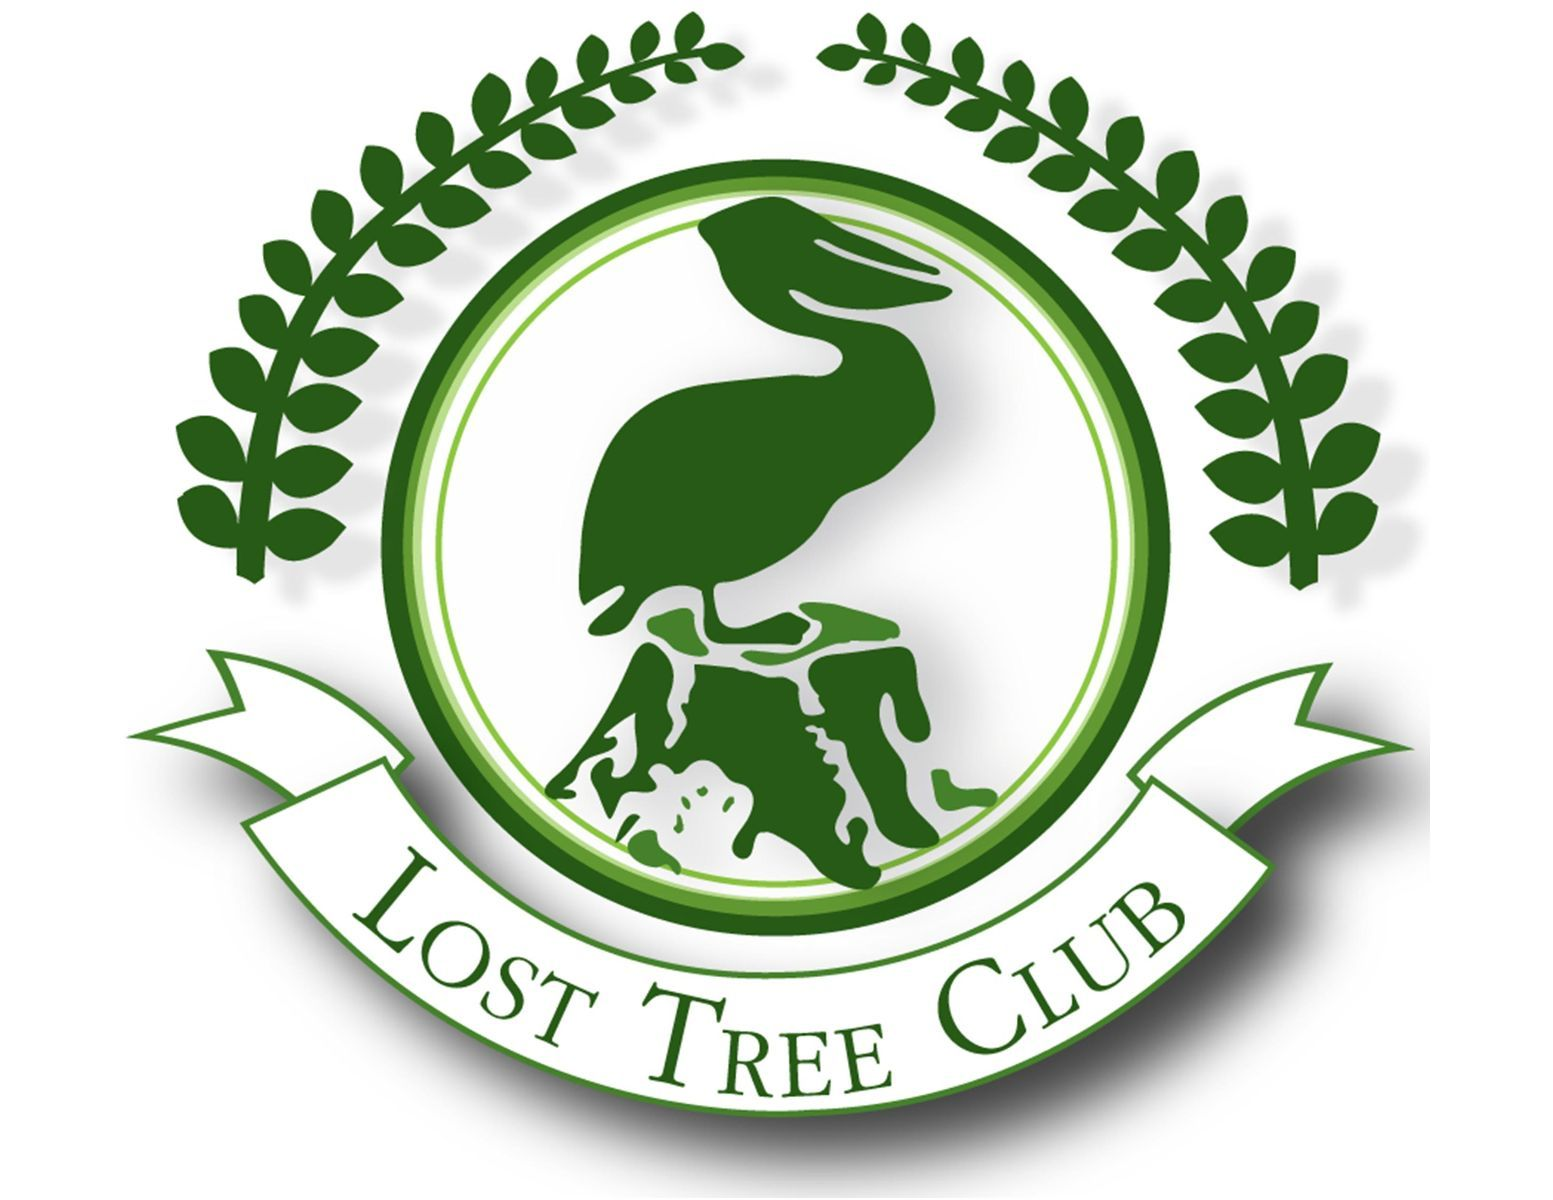 Lost Tree Club in Palm Beach Gardens, Florida. Homes in this ...